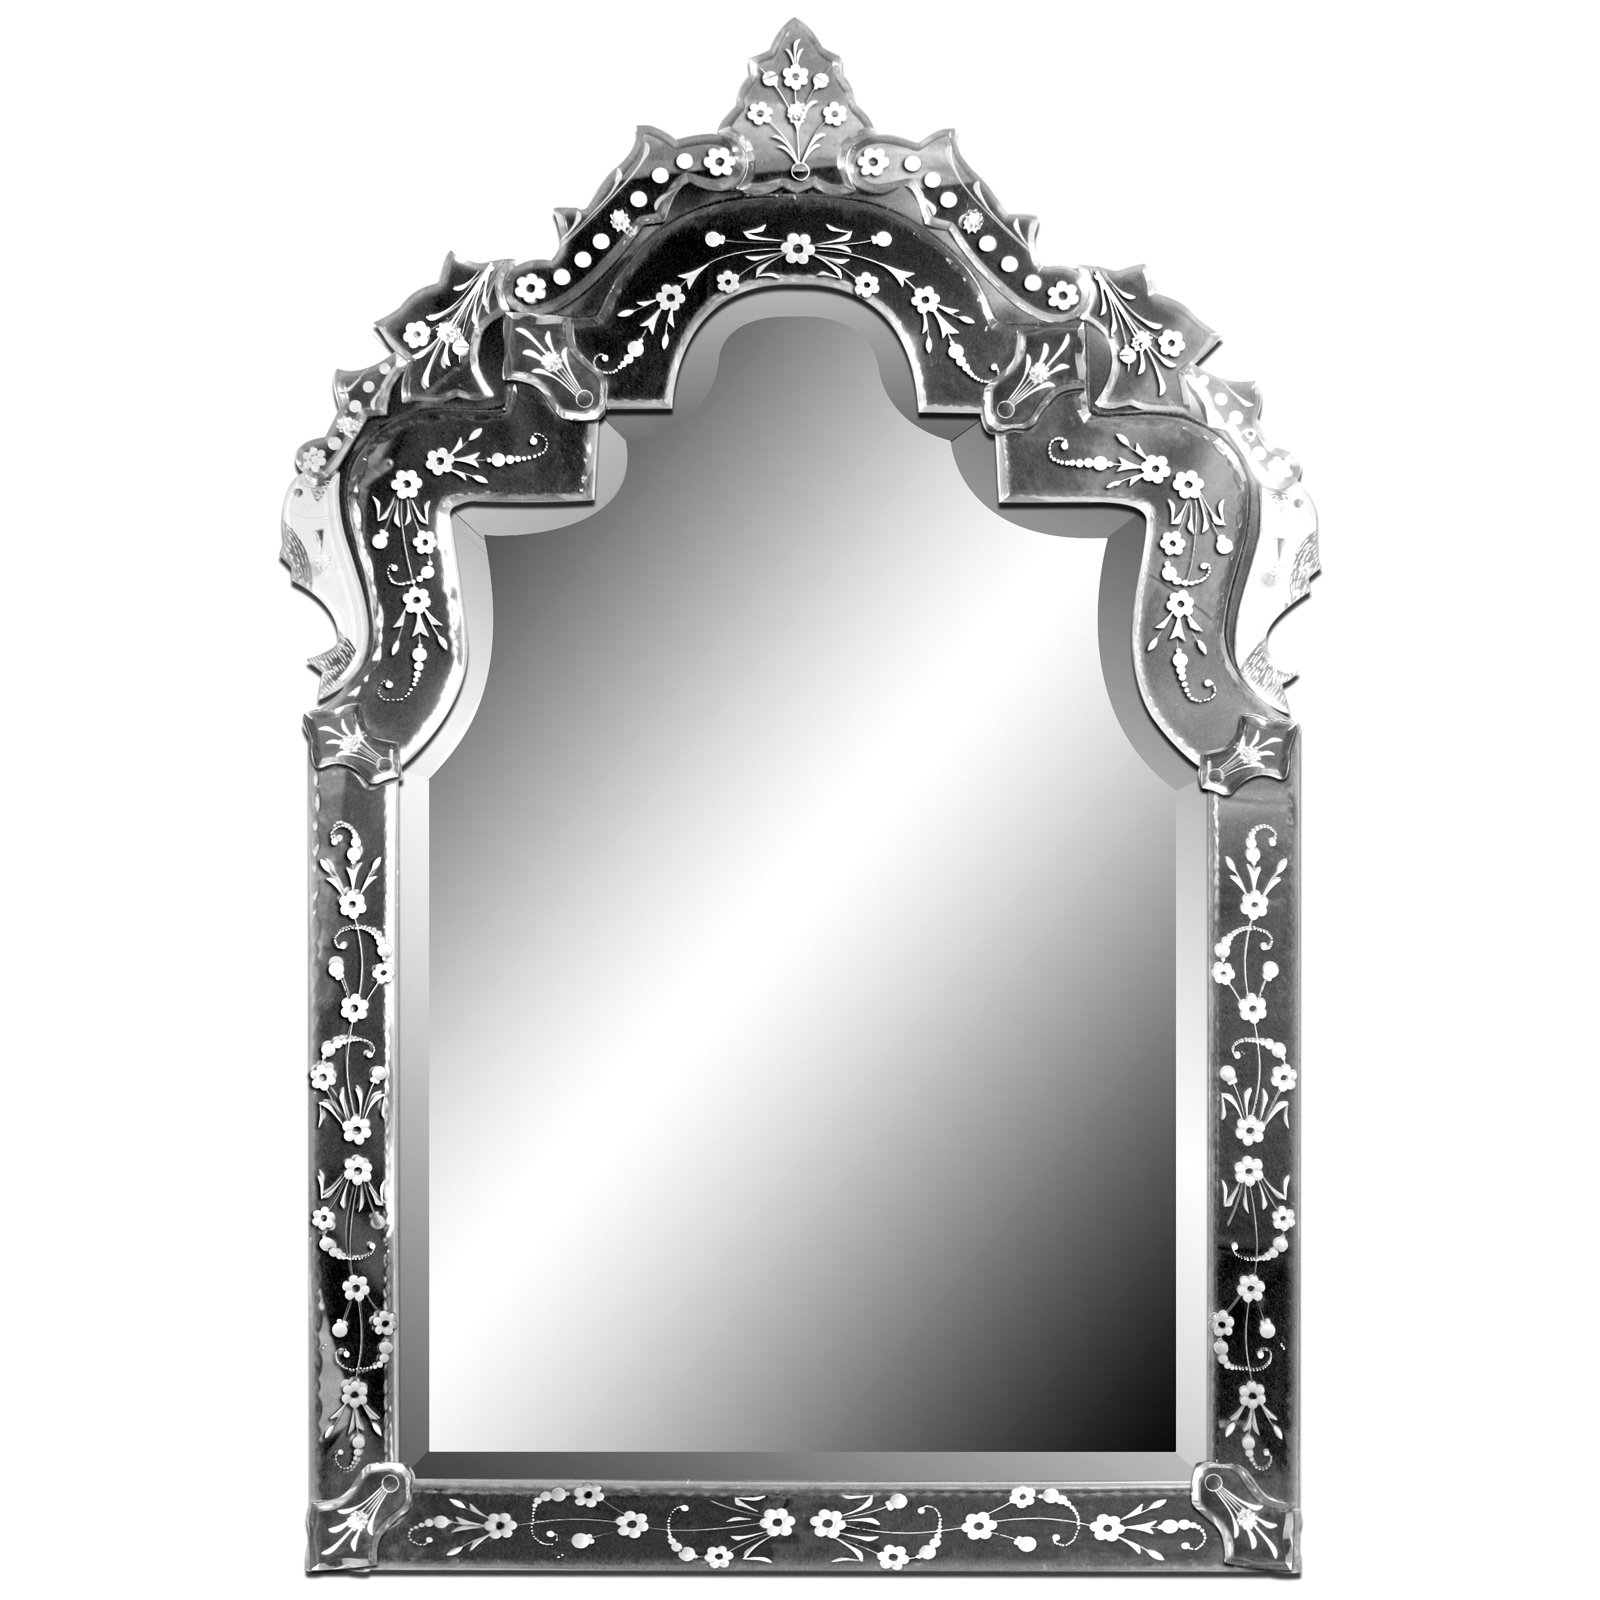 Free online mirror to see yourself on computer screen or phone..